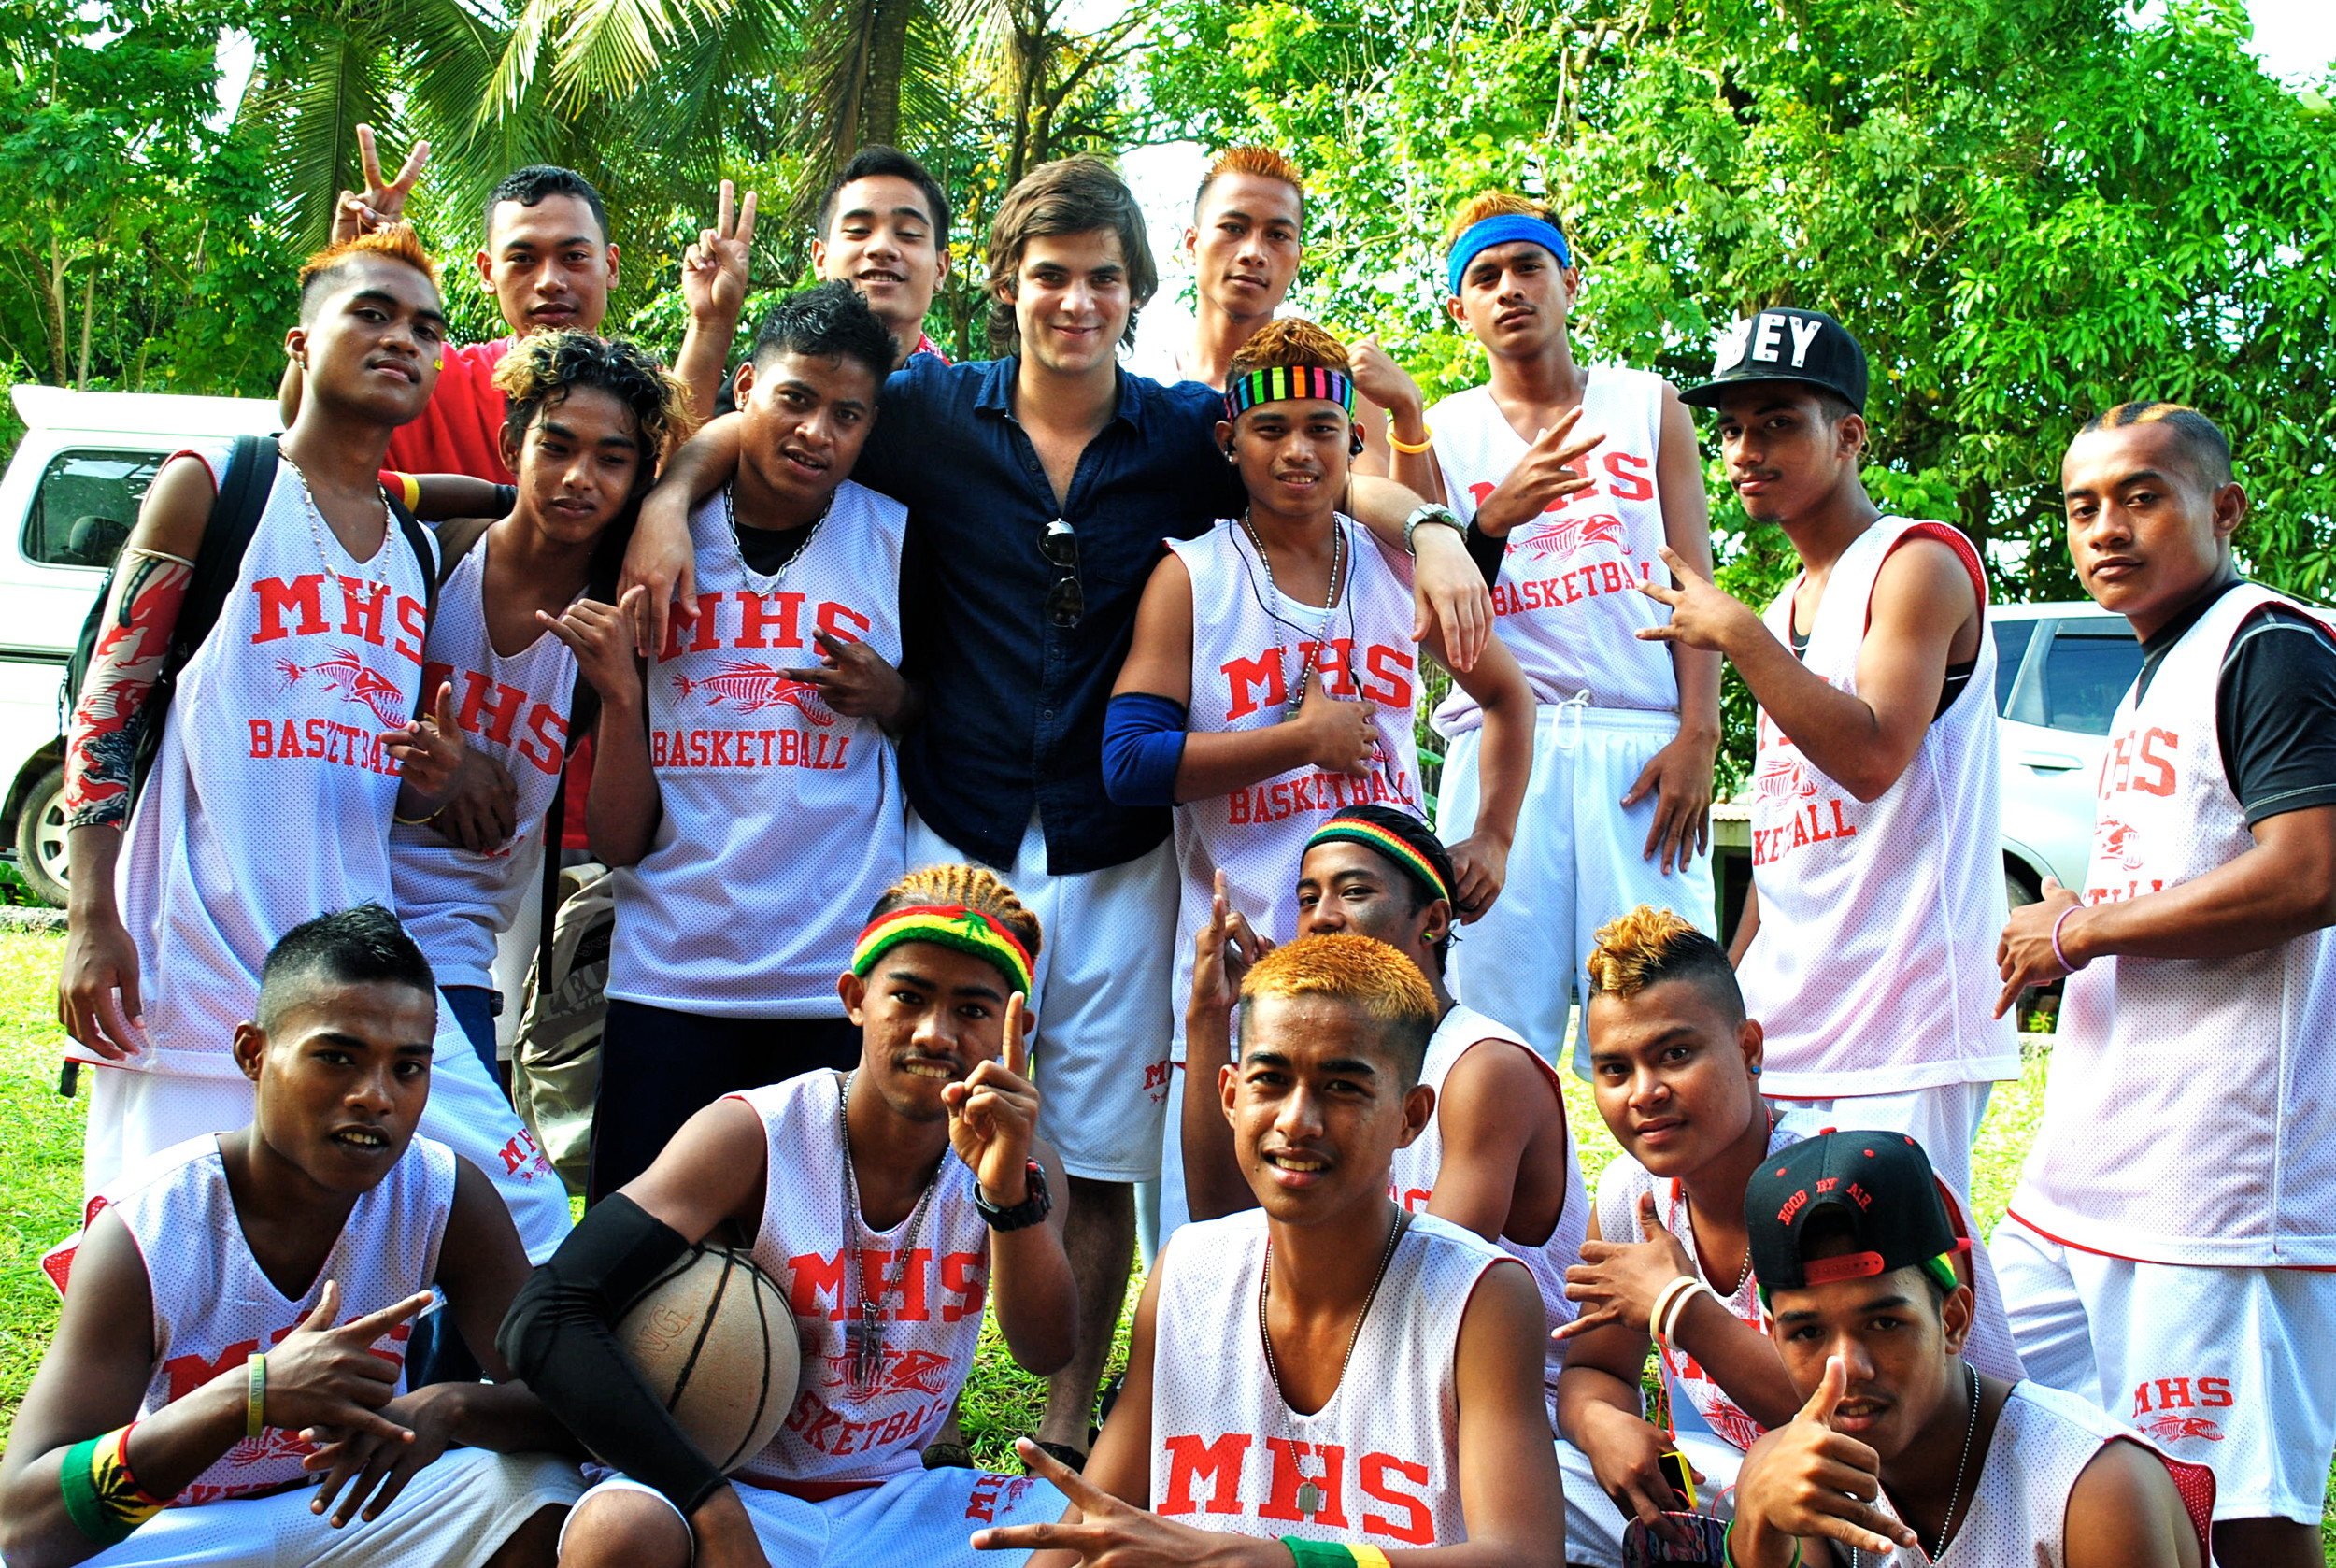 Oceanside native Jason Steinberg started a basketball program at a high school in Pohnpei, Micronesia, in 2014, which led him to establish the International Sports and Music Project a year later.